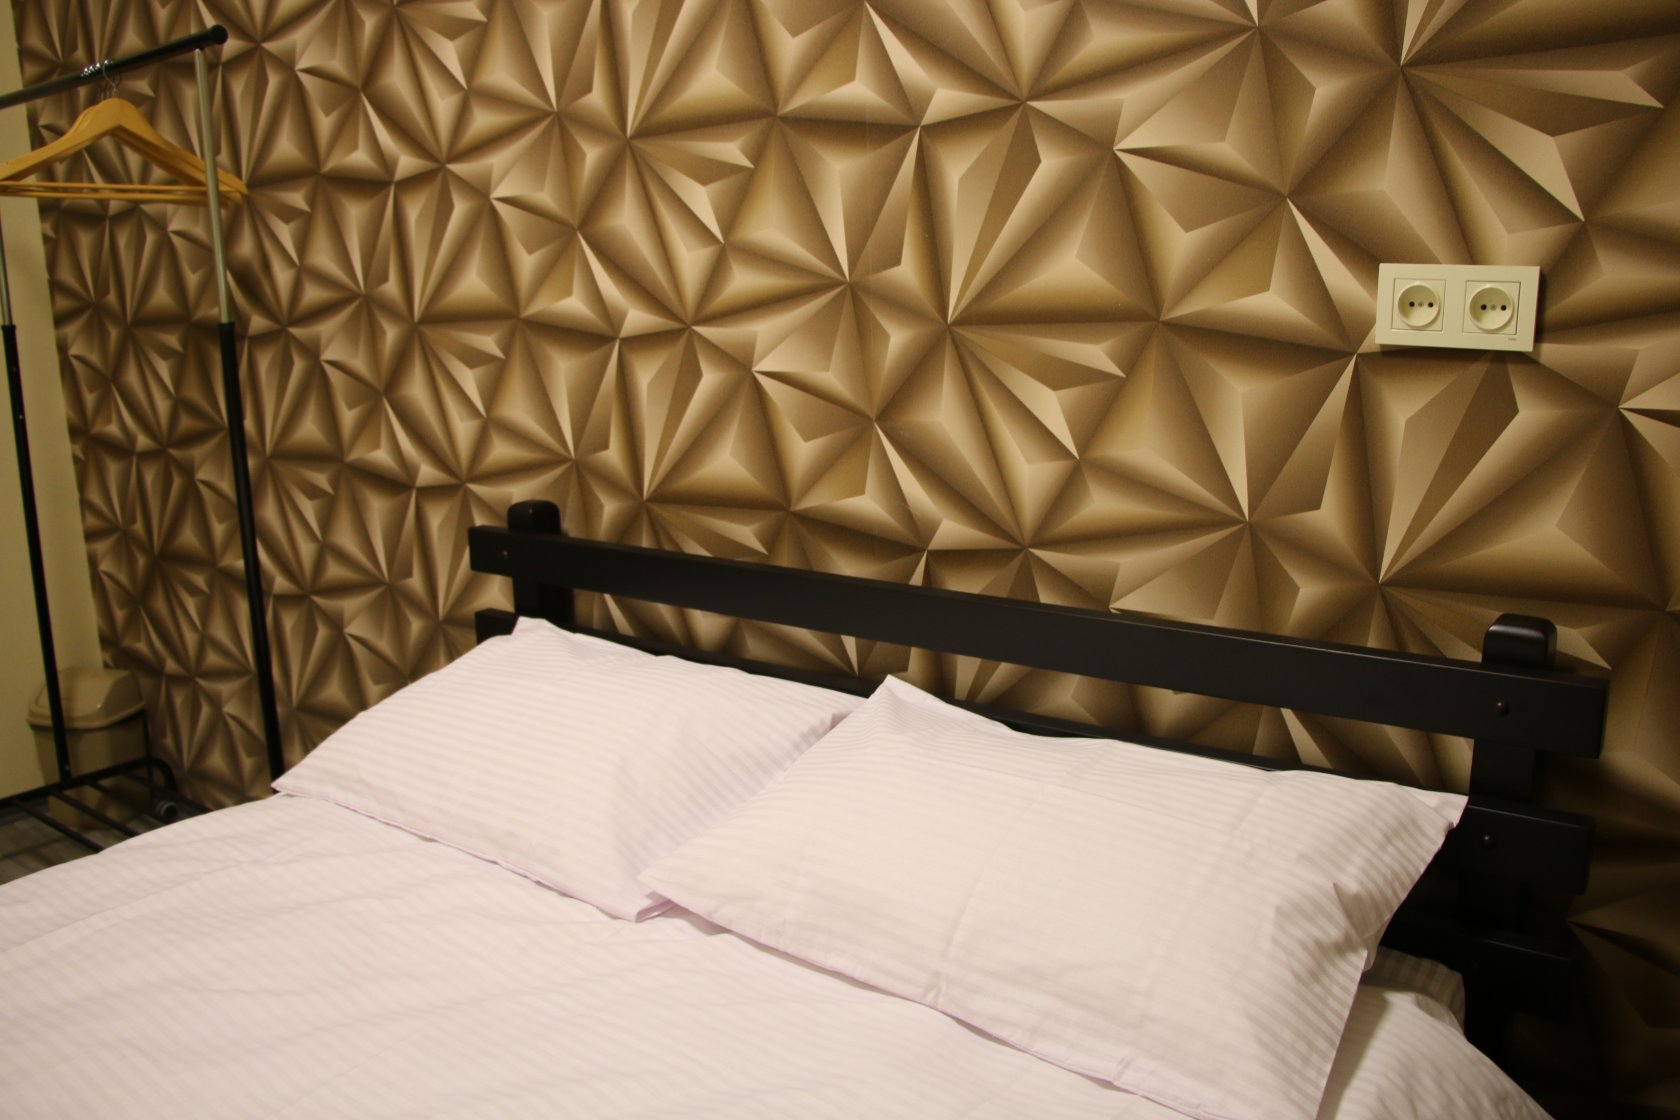 500₴ Room with double bed in new premium hostel